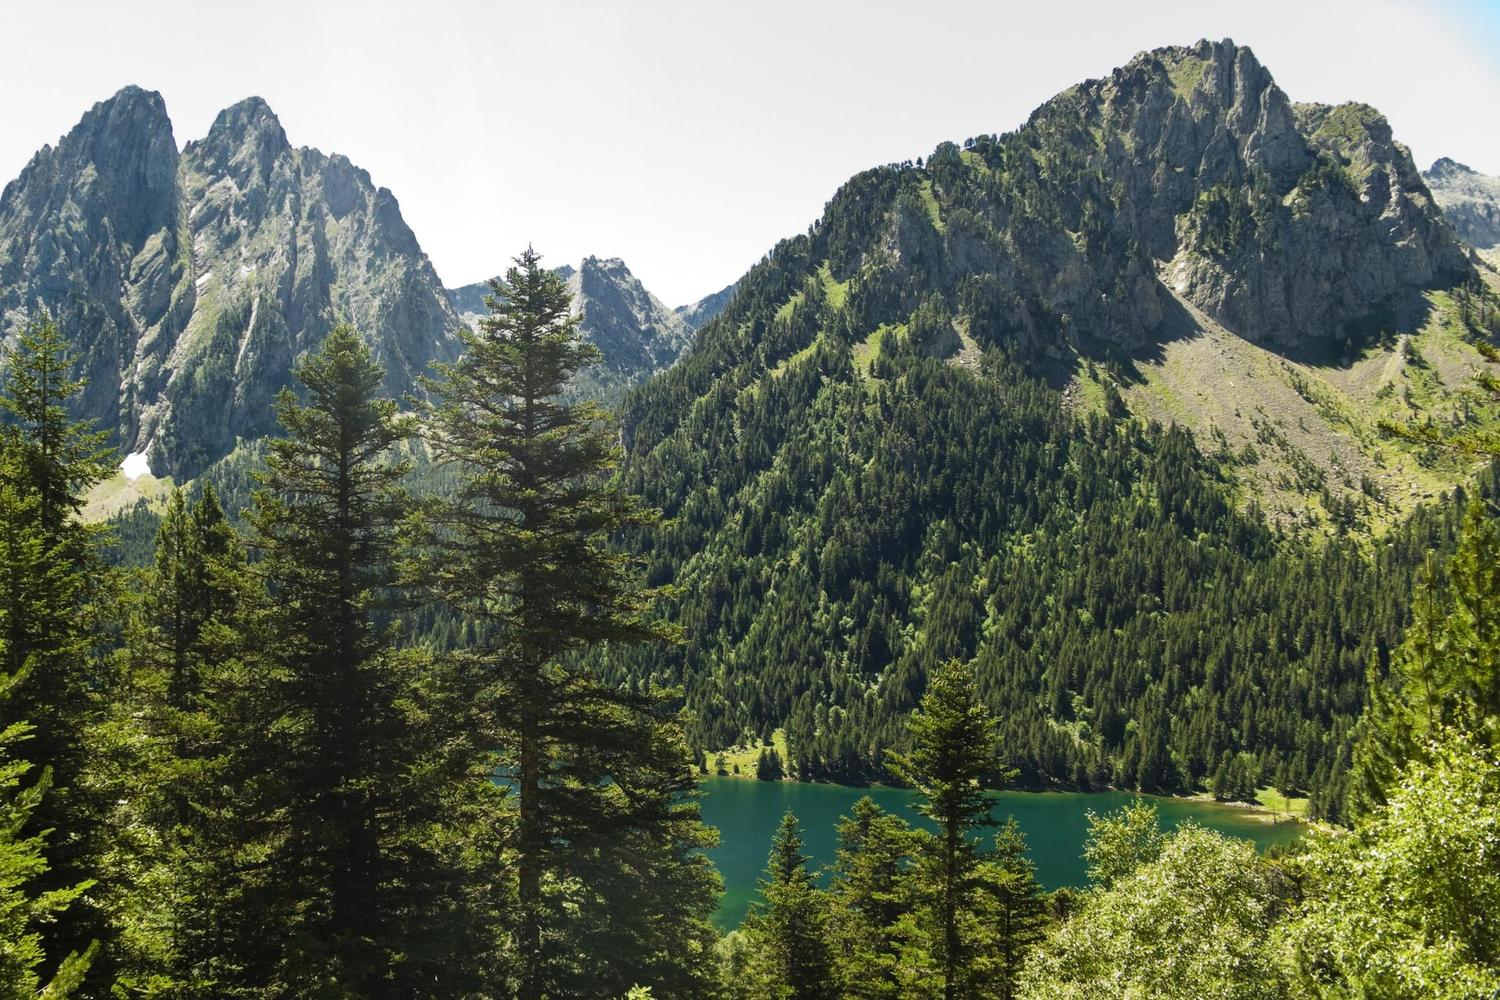 The high forests, peaks and lakes of the Aigues Tortes National Park